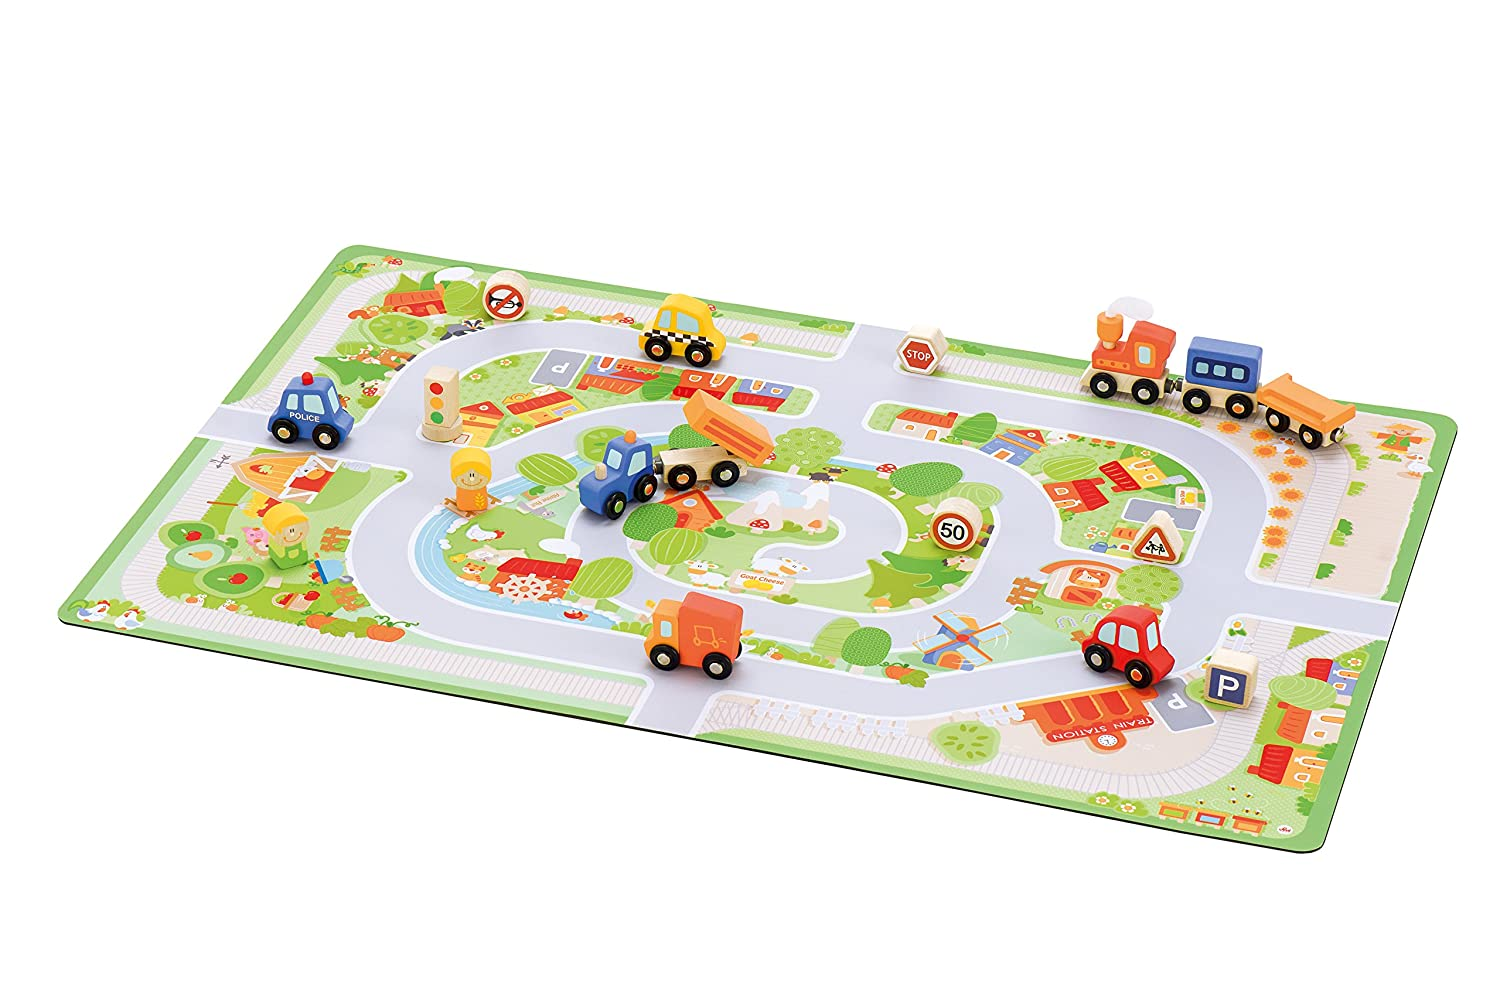 Trudi 82899 - Kinderspiel, Kinderspiel, - Sevi Play Country!, 90 x 57 cm f28be1